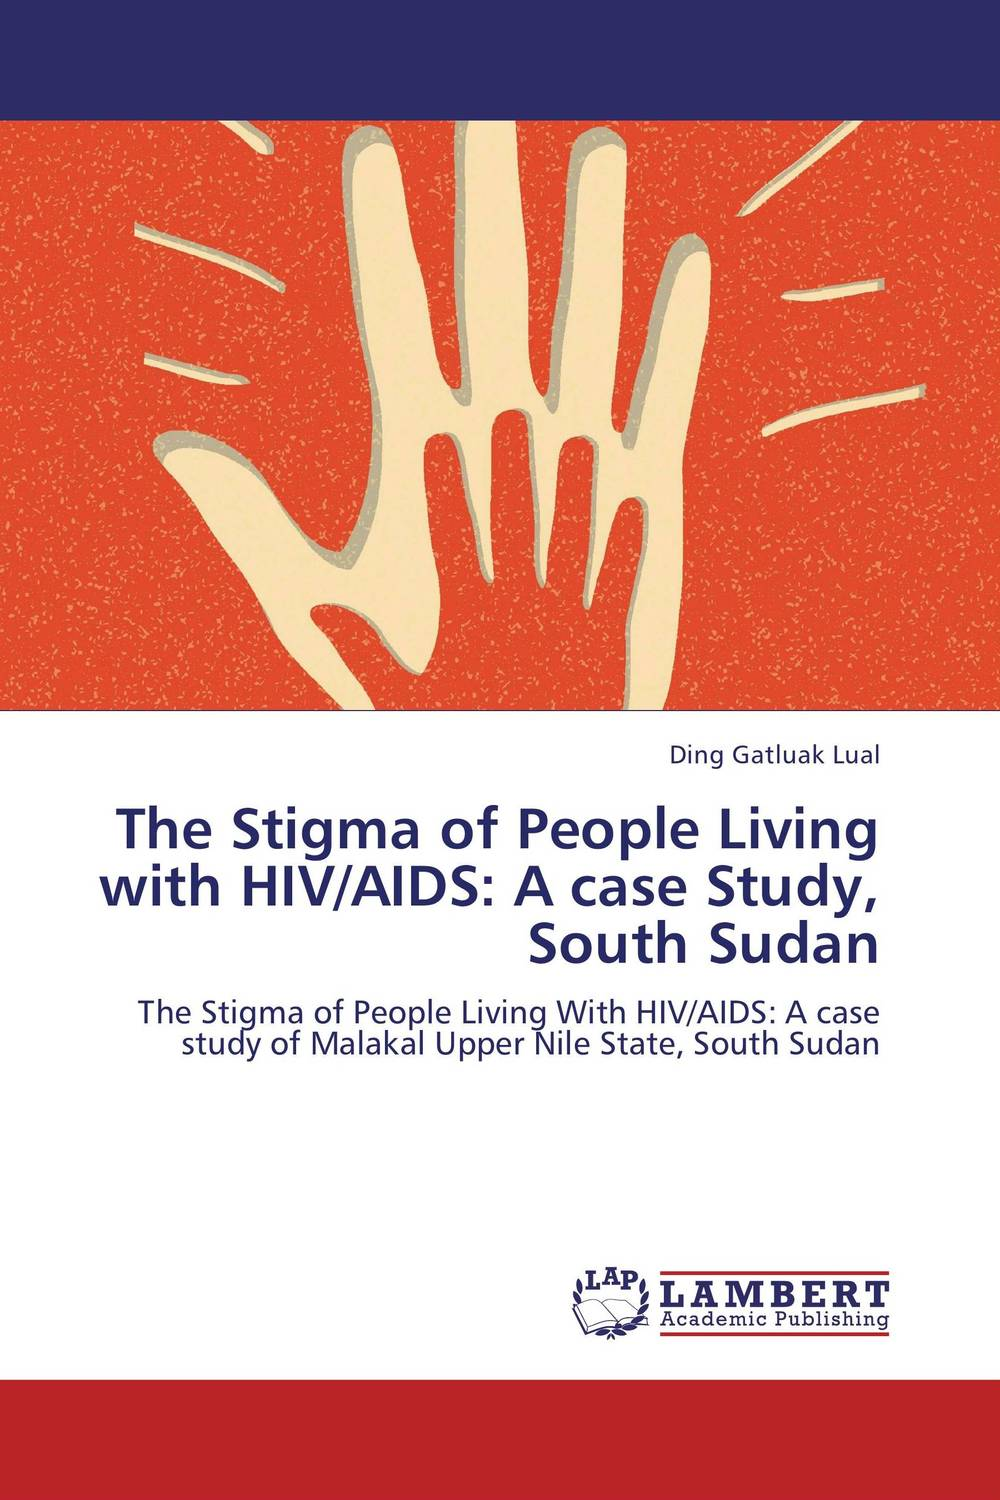 The Stigma of People Living with HIV/AIDS: A case Study, South Sudan